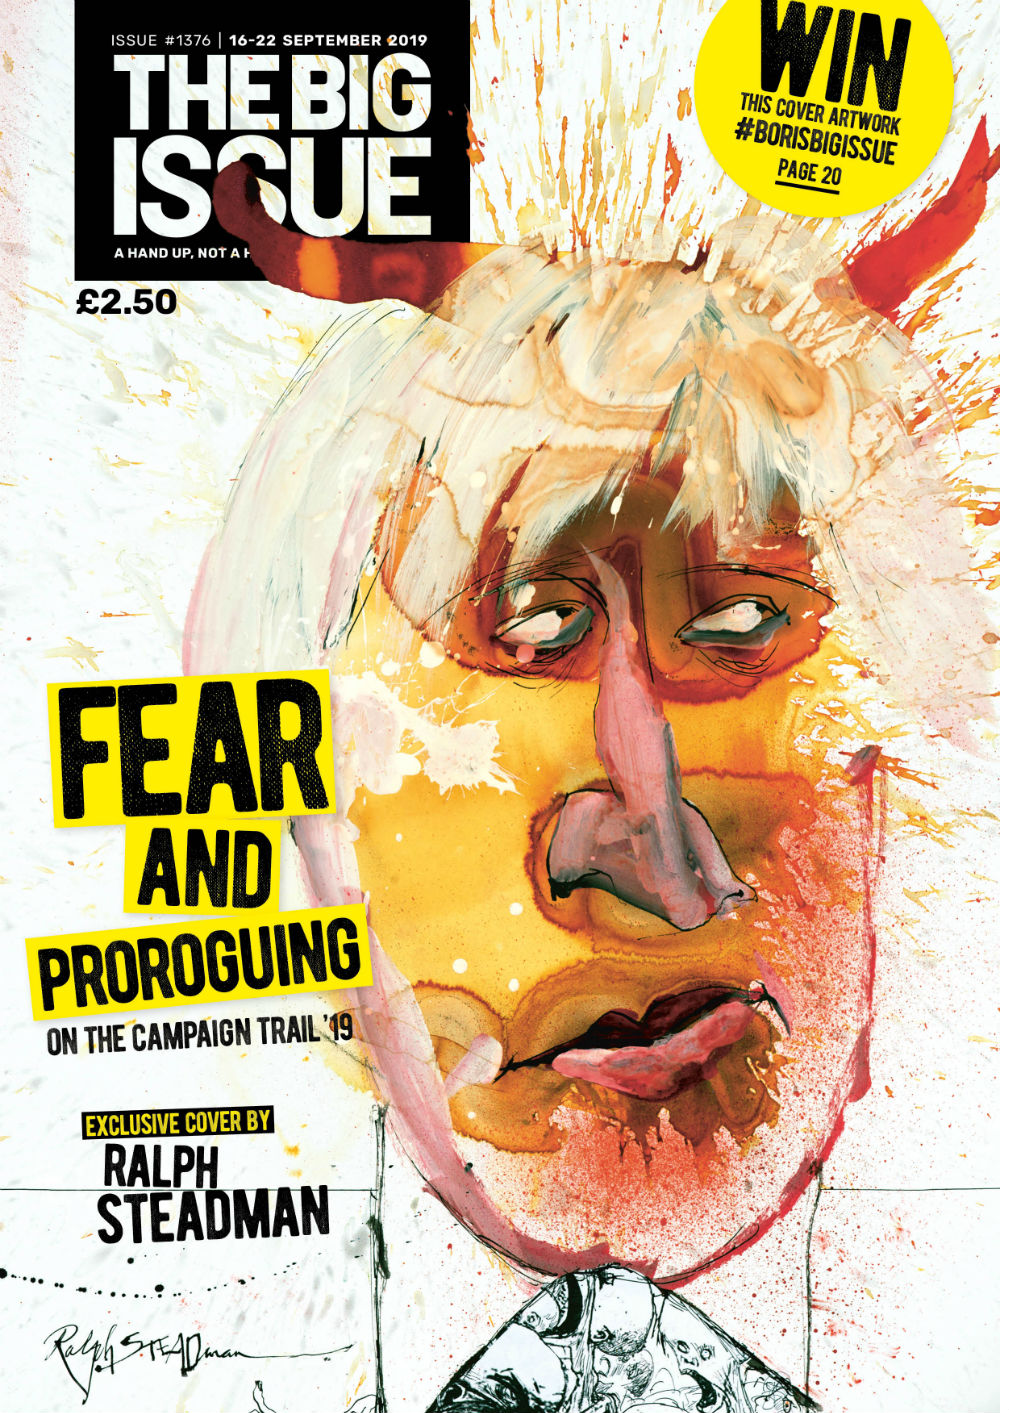 Front cover of The Big Issue featuring the Johnson portrait